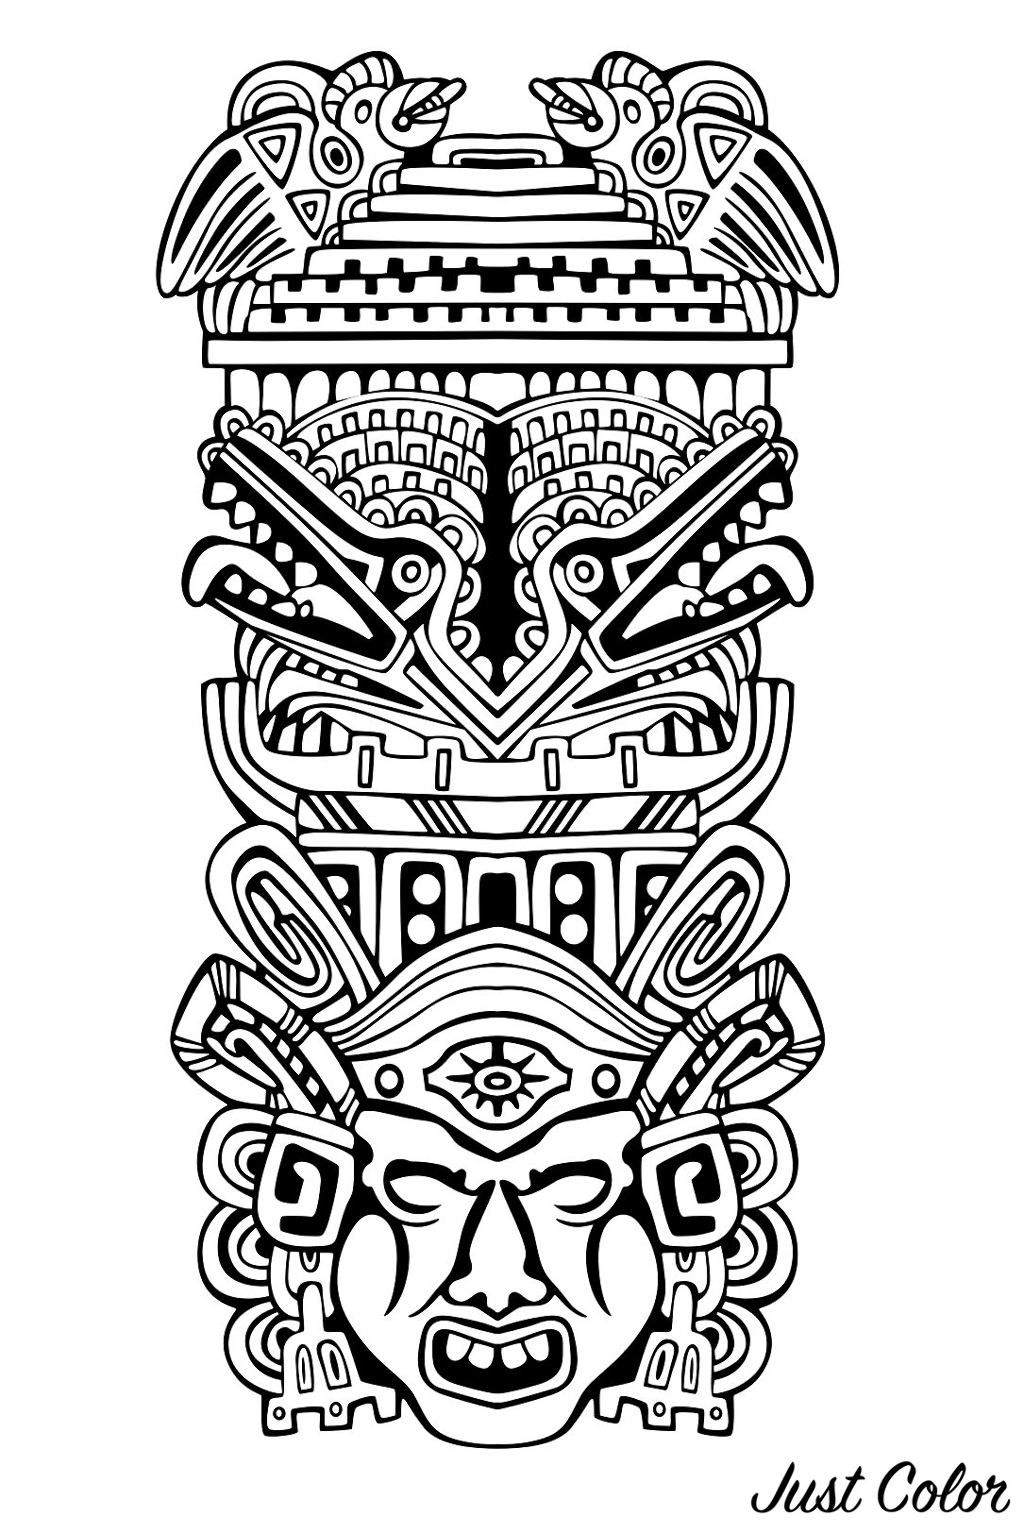 Totem inspired by Aztecs, Mayans and Incas - 4